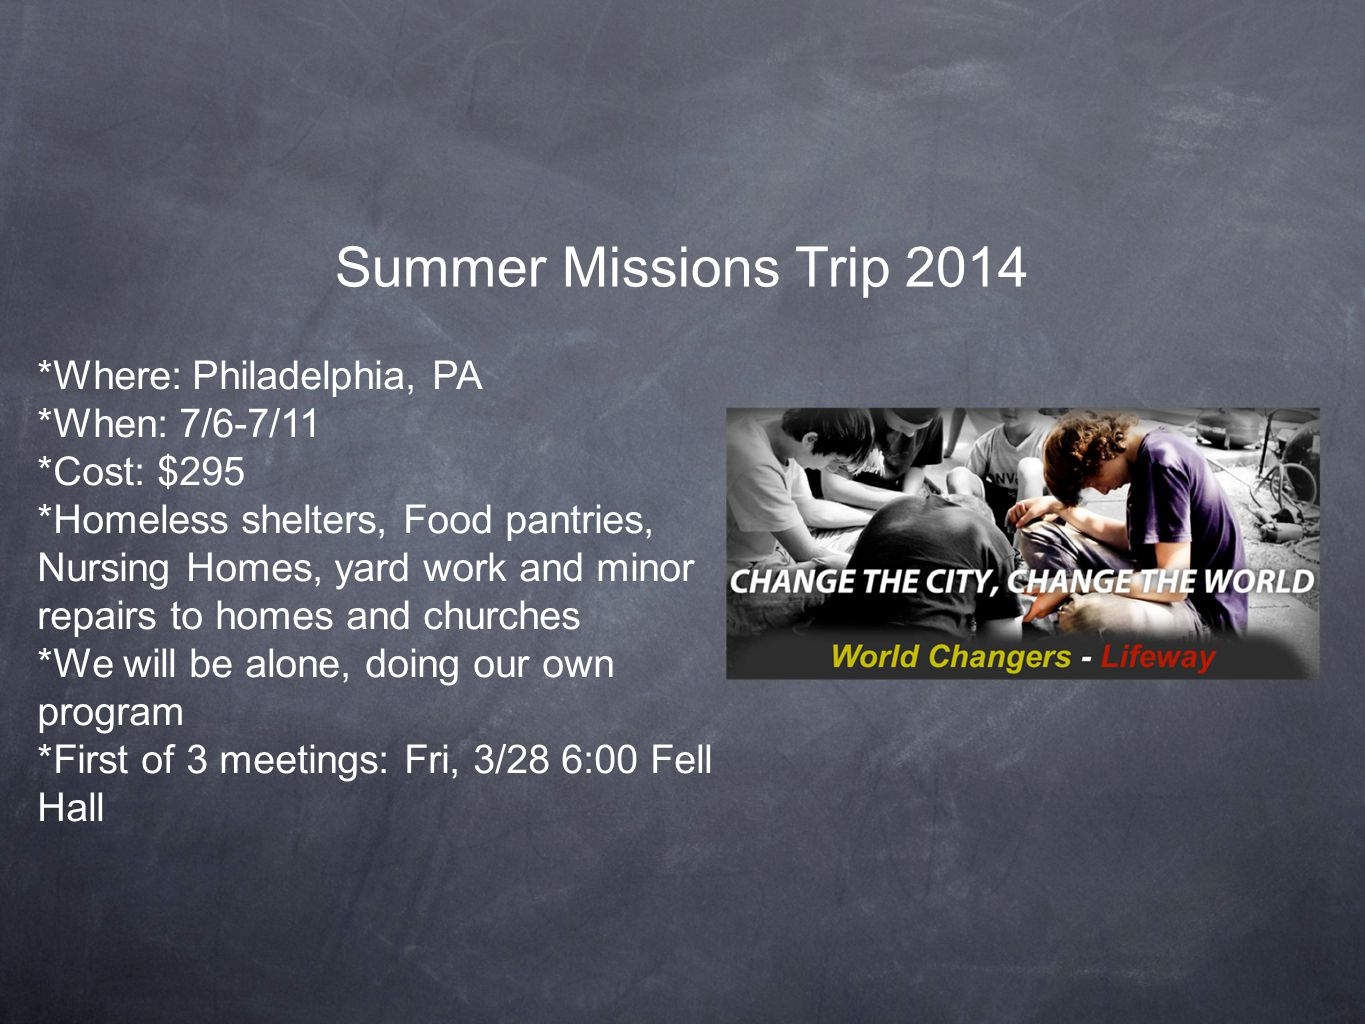 Summer Missions Trip 2014 *Where: Philadelphia, PA *When: 7/6-7/11 *Cost: $295 *Homeless shelters, Food pantries, Nursing Homes, yard work and minor repairs to homes and churches *We will be alone, doing our own program *First of 3 meetings: Fri, 3/28 6:00 Fell Hall